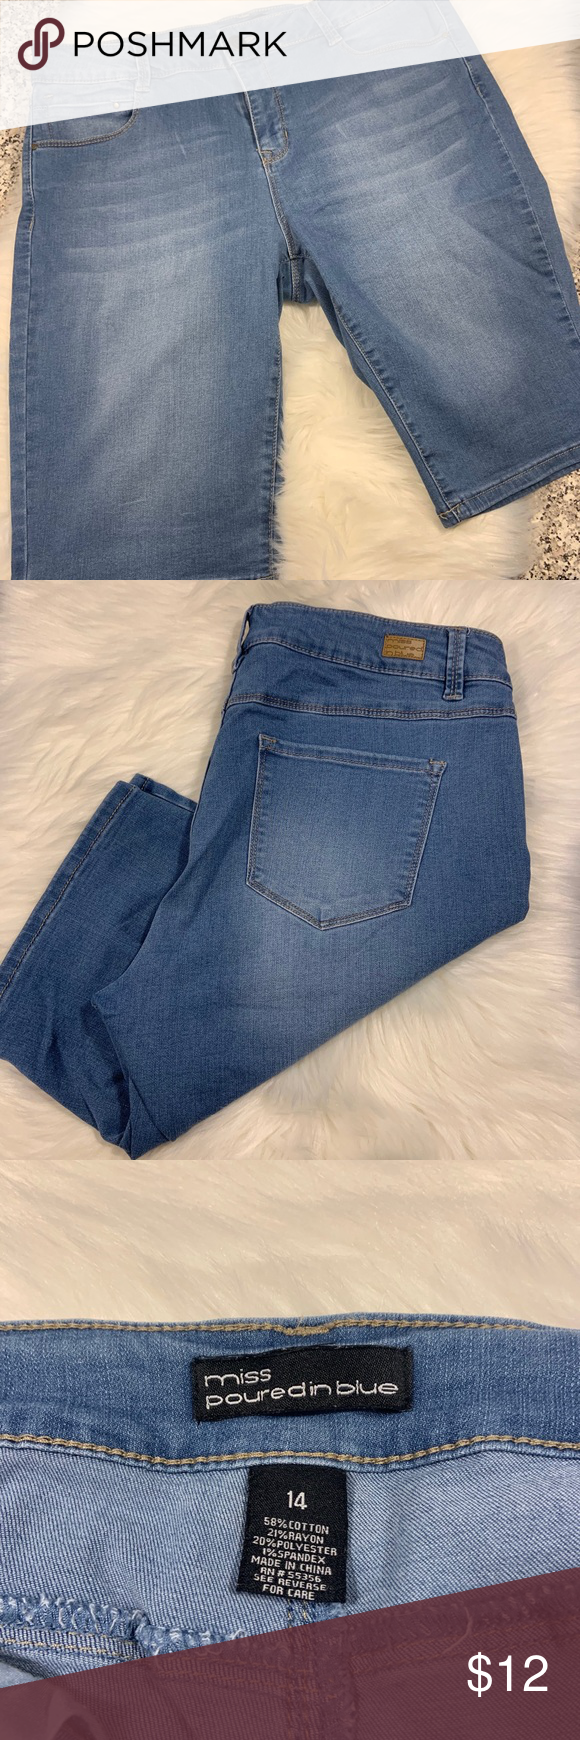 Miss Poured In Blue Denim Shorts Size 14 Guc Blue Denim Shorts Blue Denim Denim Shorts